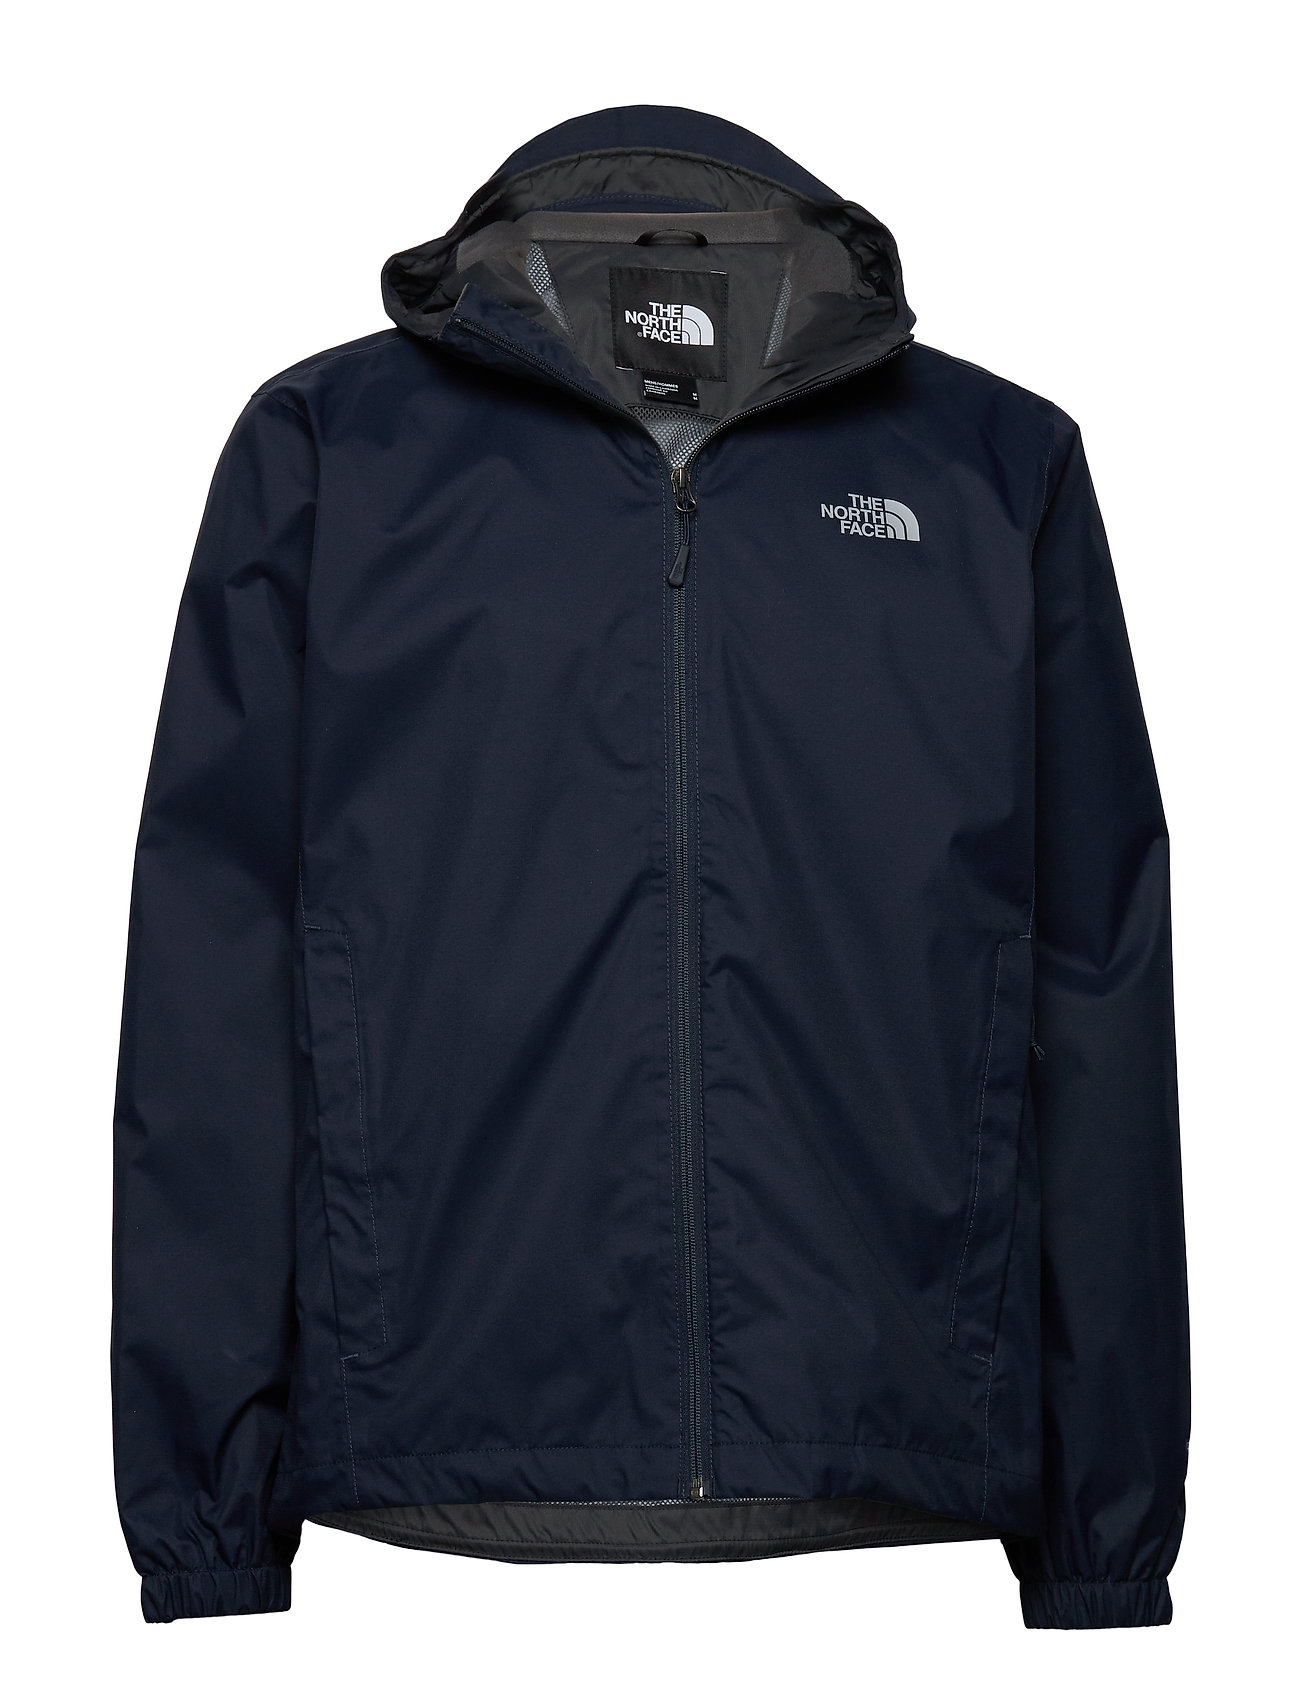 The North Face M QUEST JACKET - URBAN NAVY